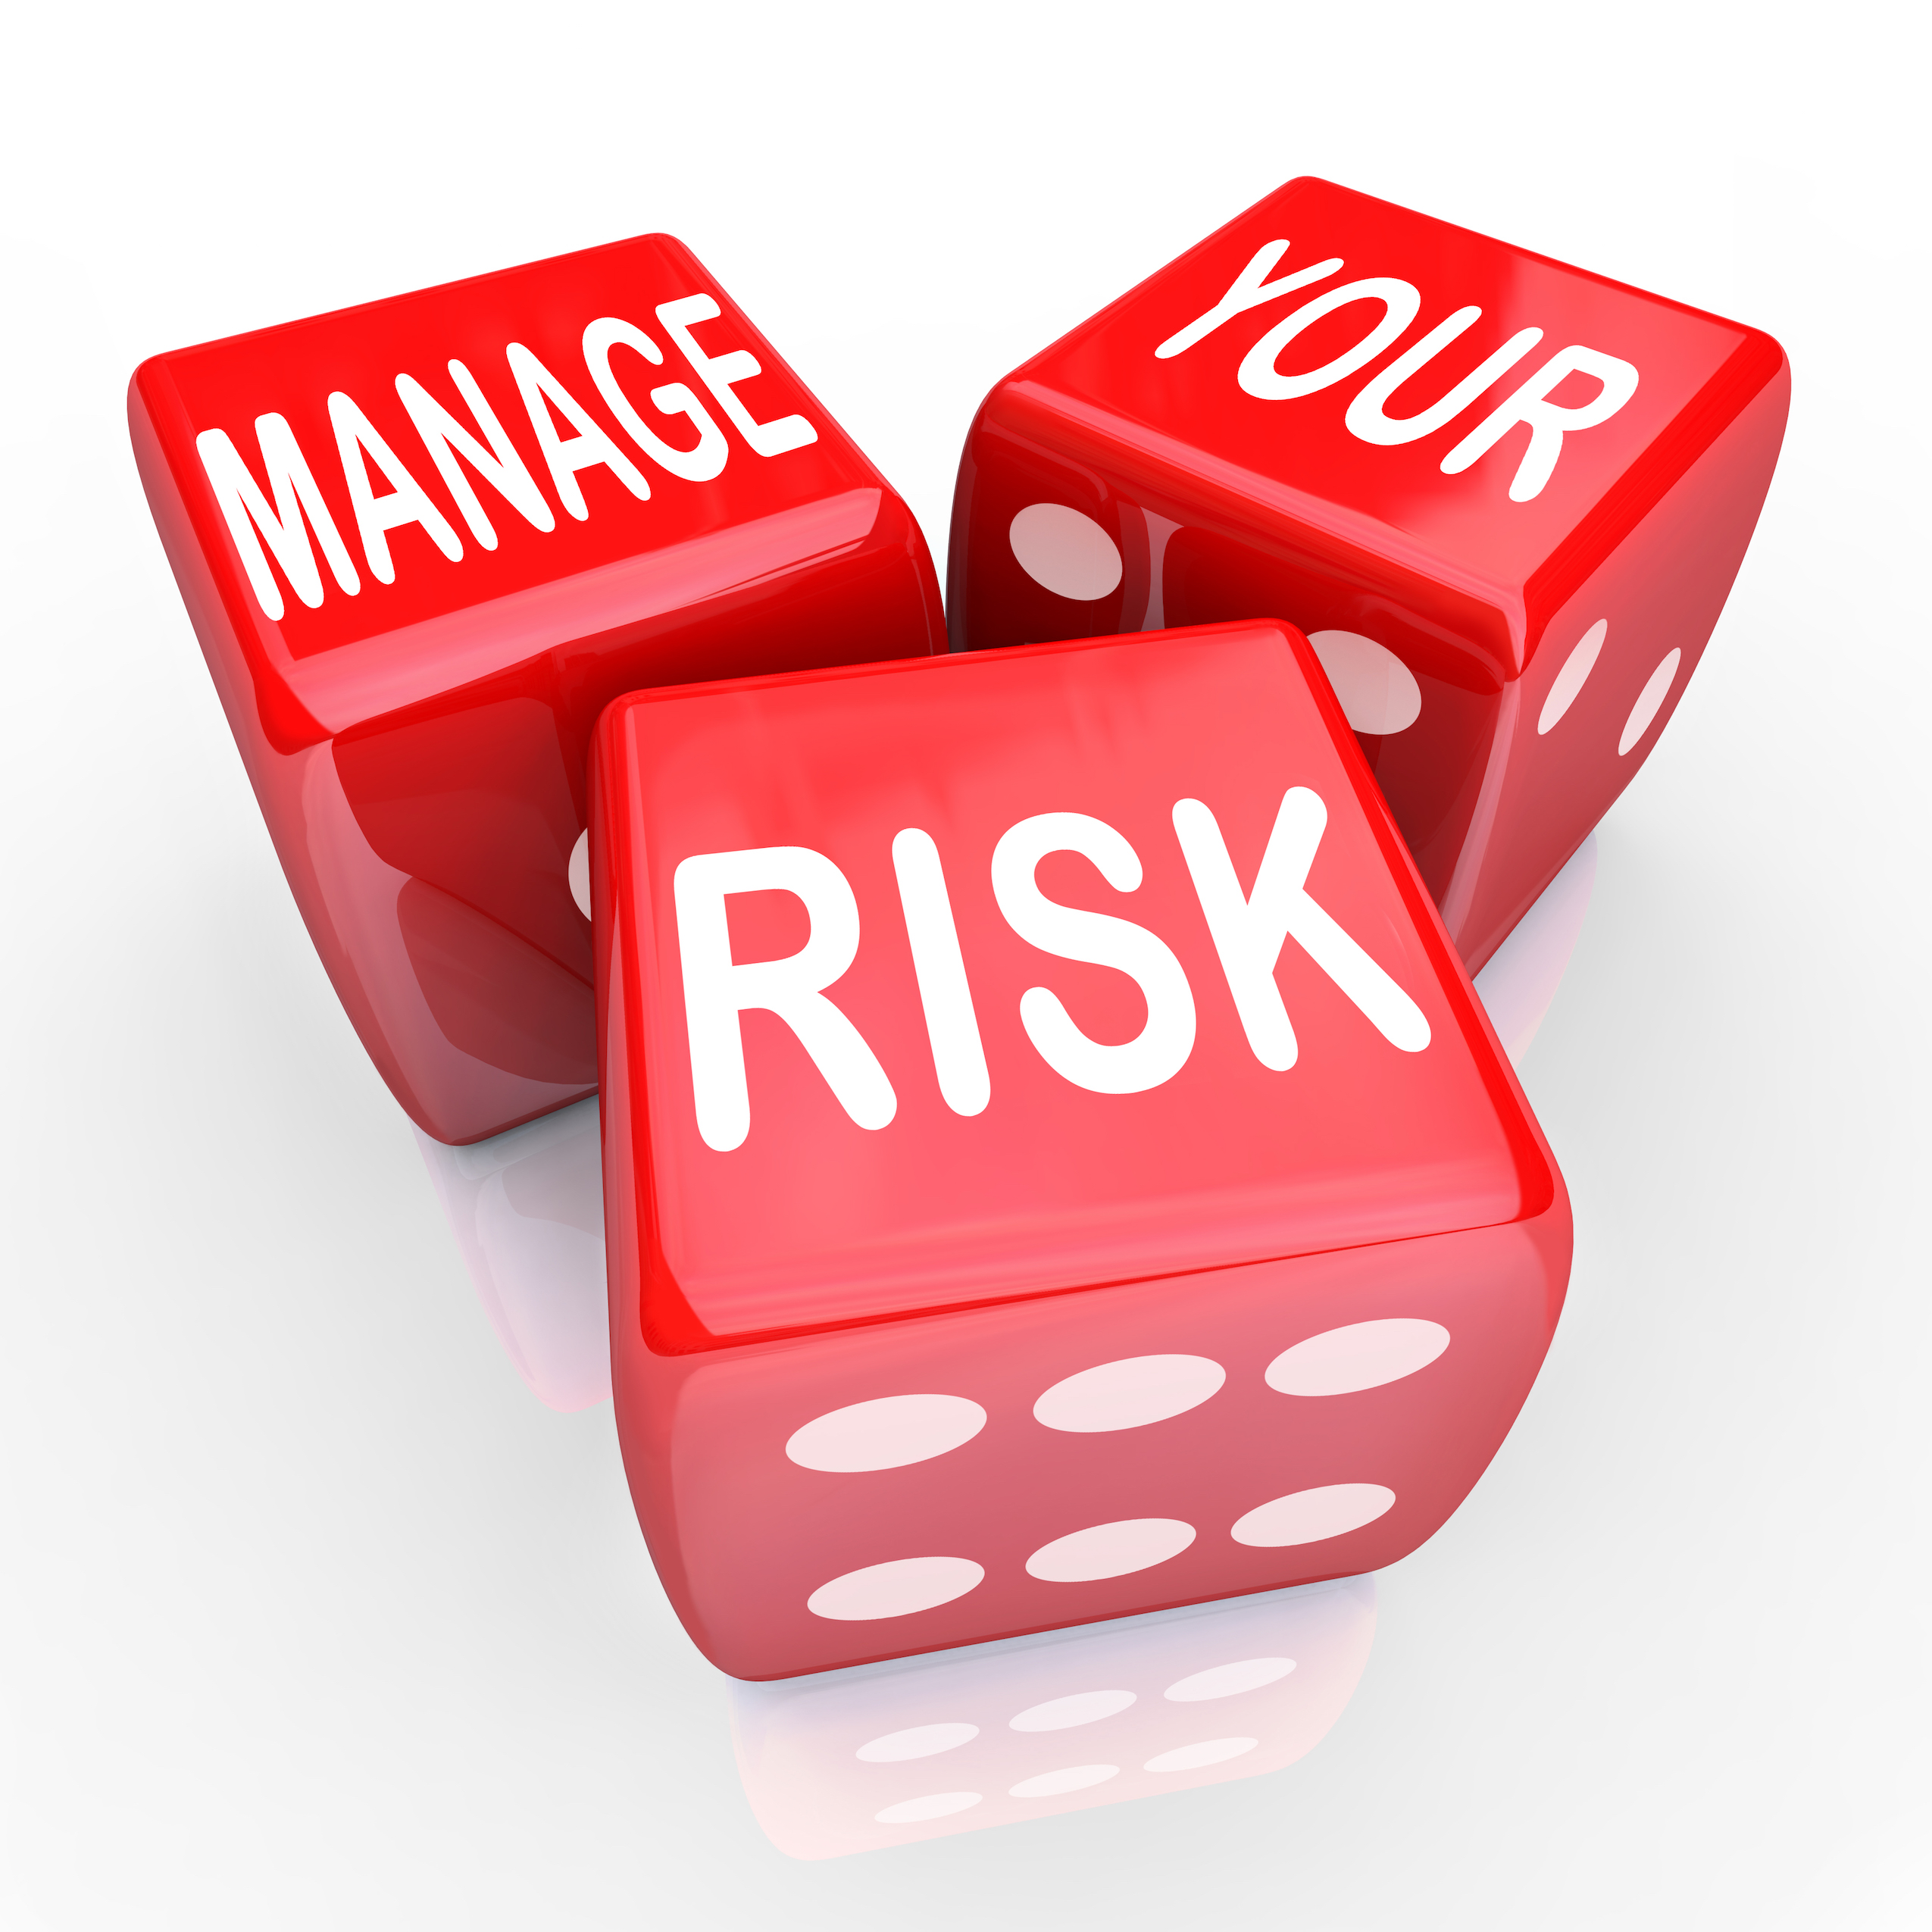 Delaying increases your data risk.